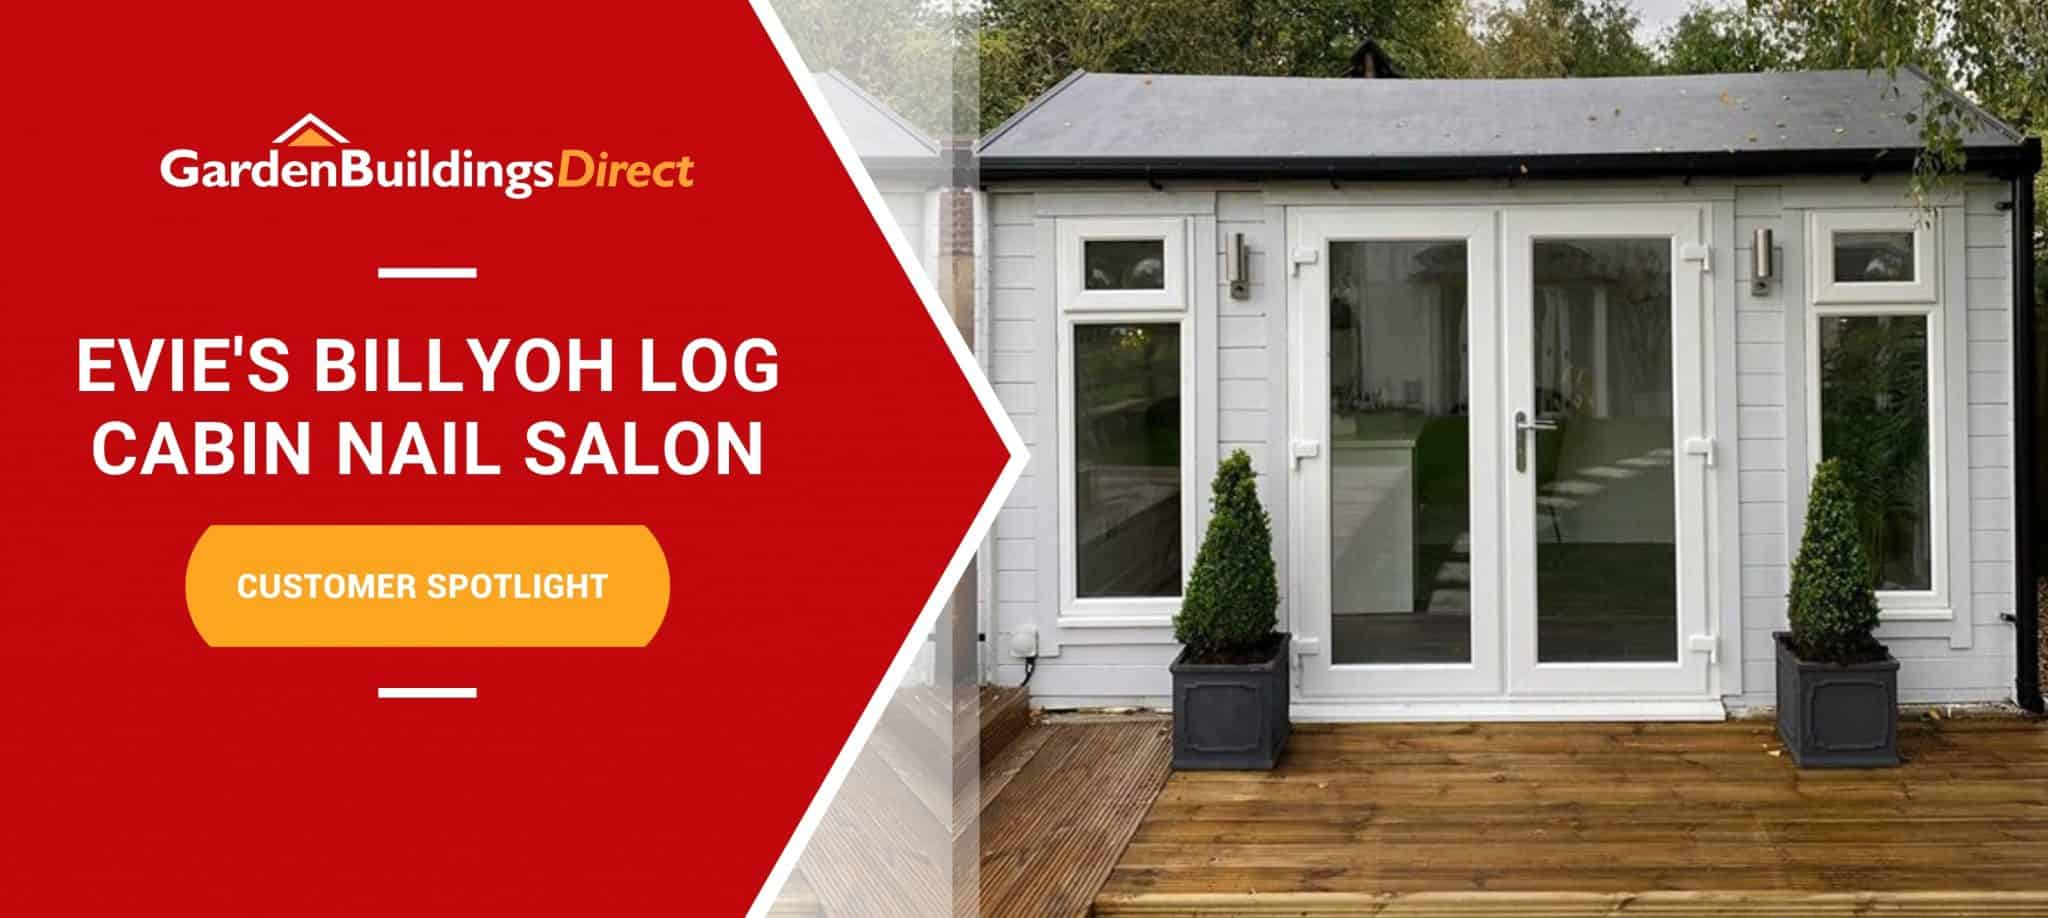 BillyOh Darcy Log cabin summerhouse painted white with Garden Buildings Direct logo and banner